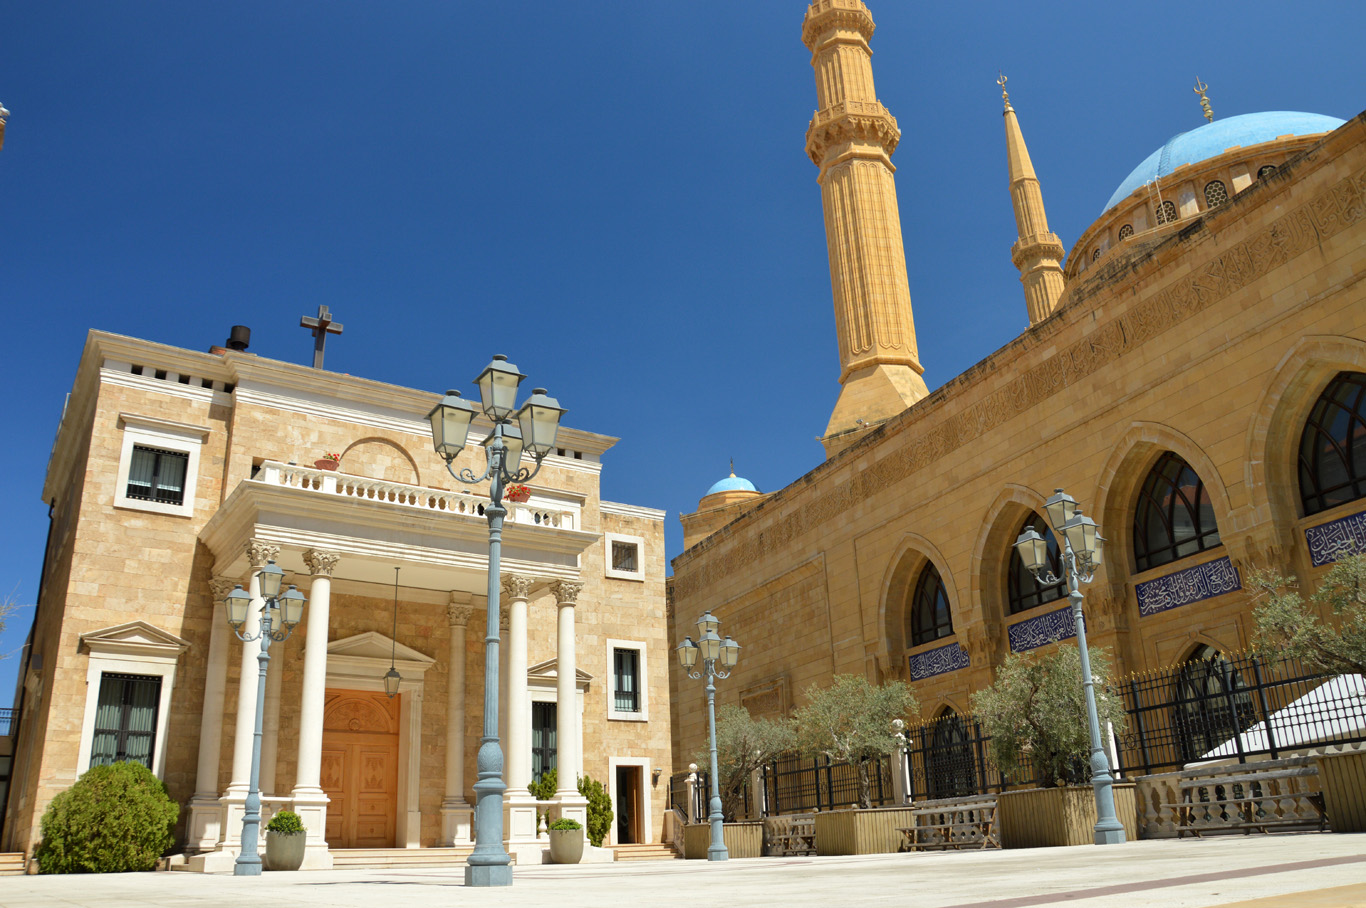 Beirut - Beautiful architecture - church and mosque side by side